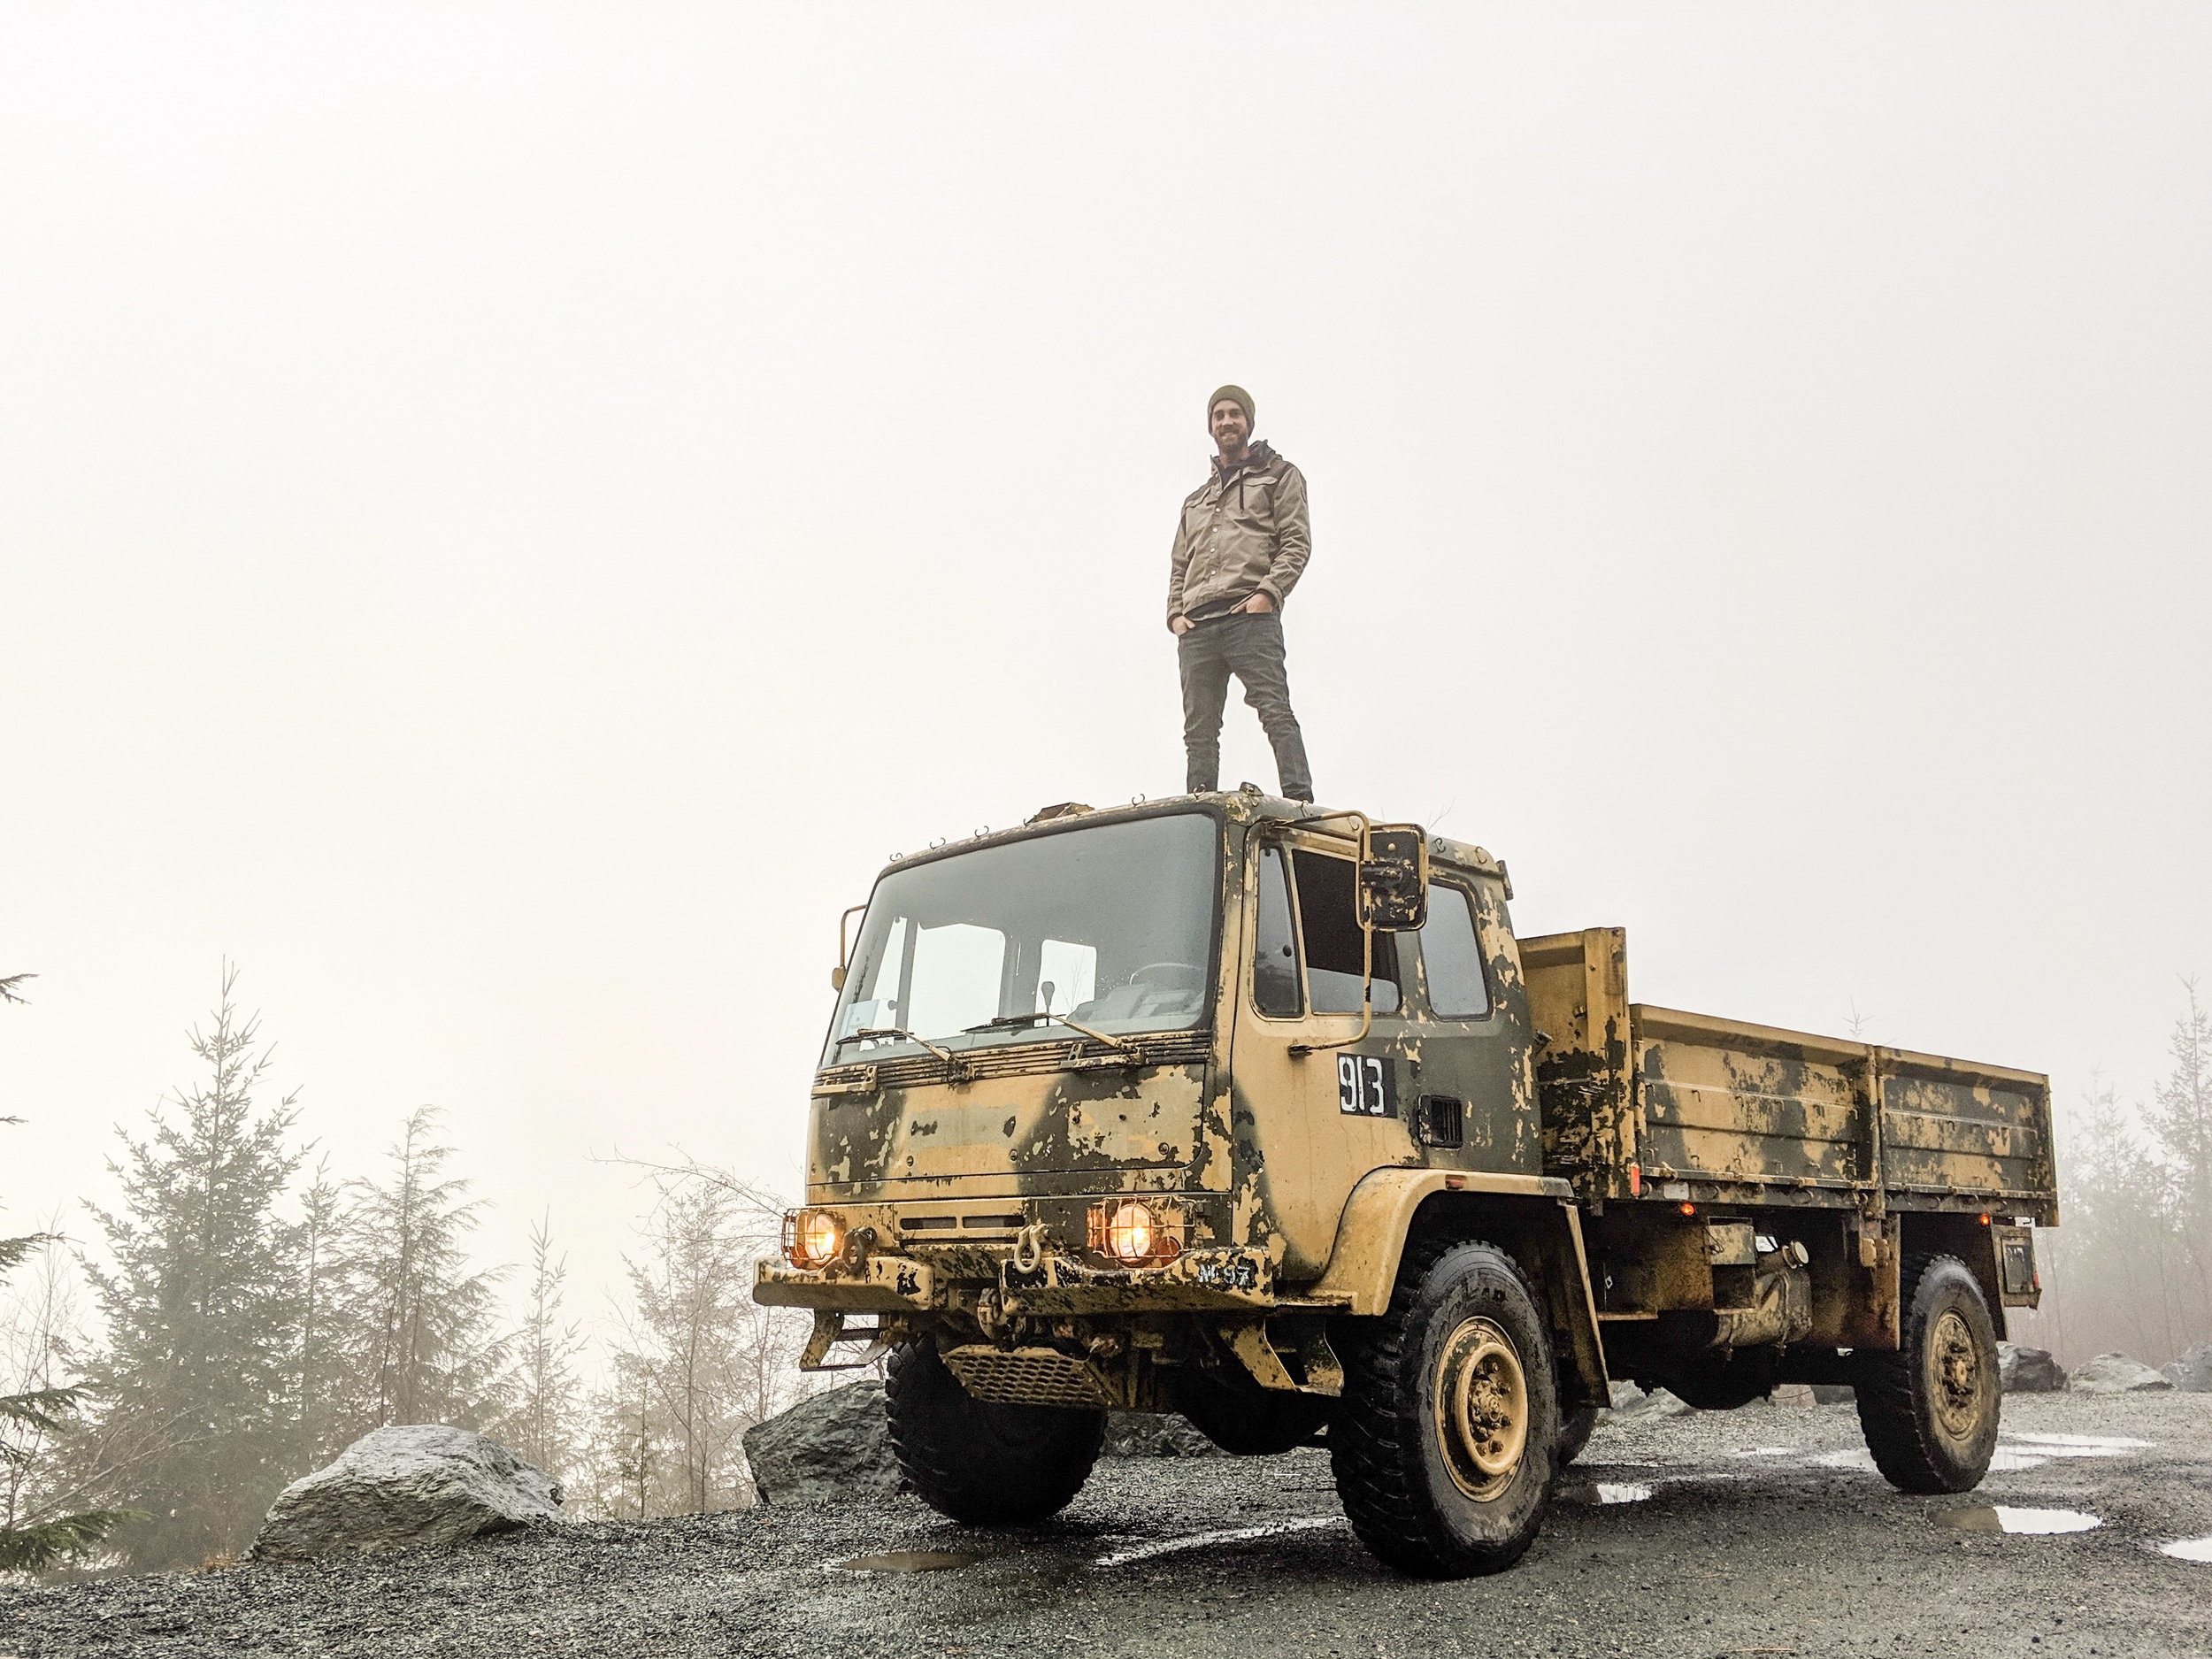 the DAF's roof is rated to support up to five troops, or so I've heard, but it sure can support me!